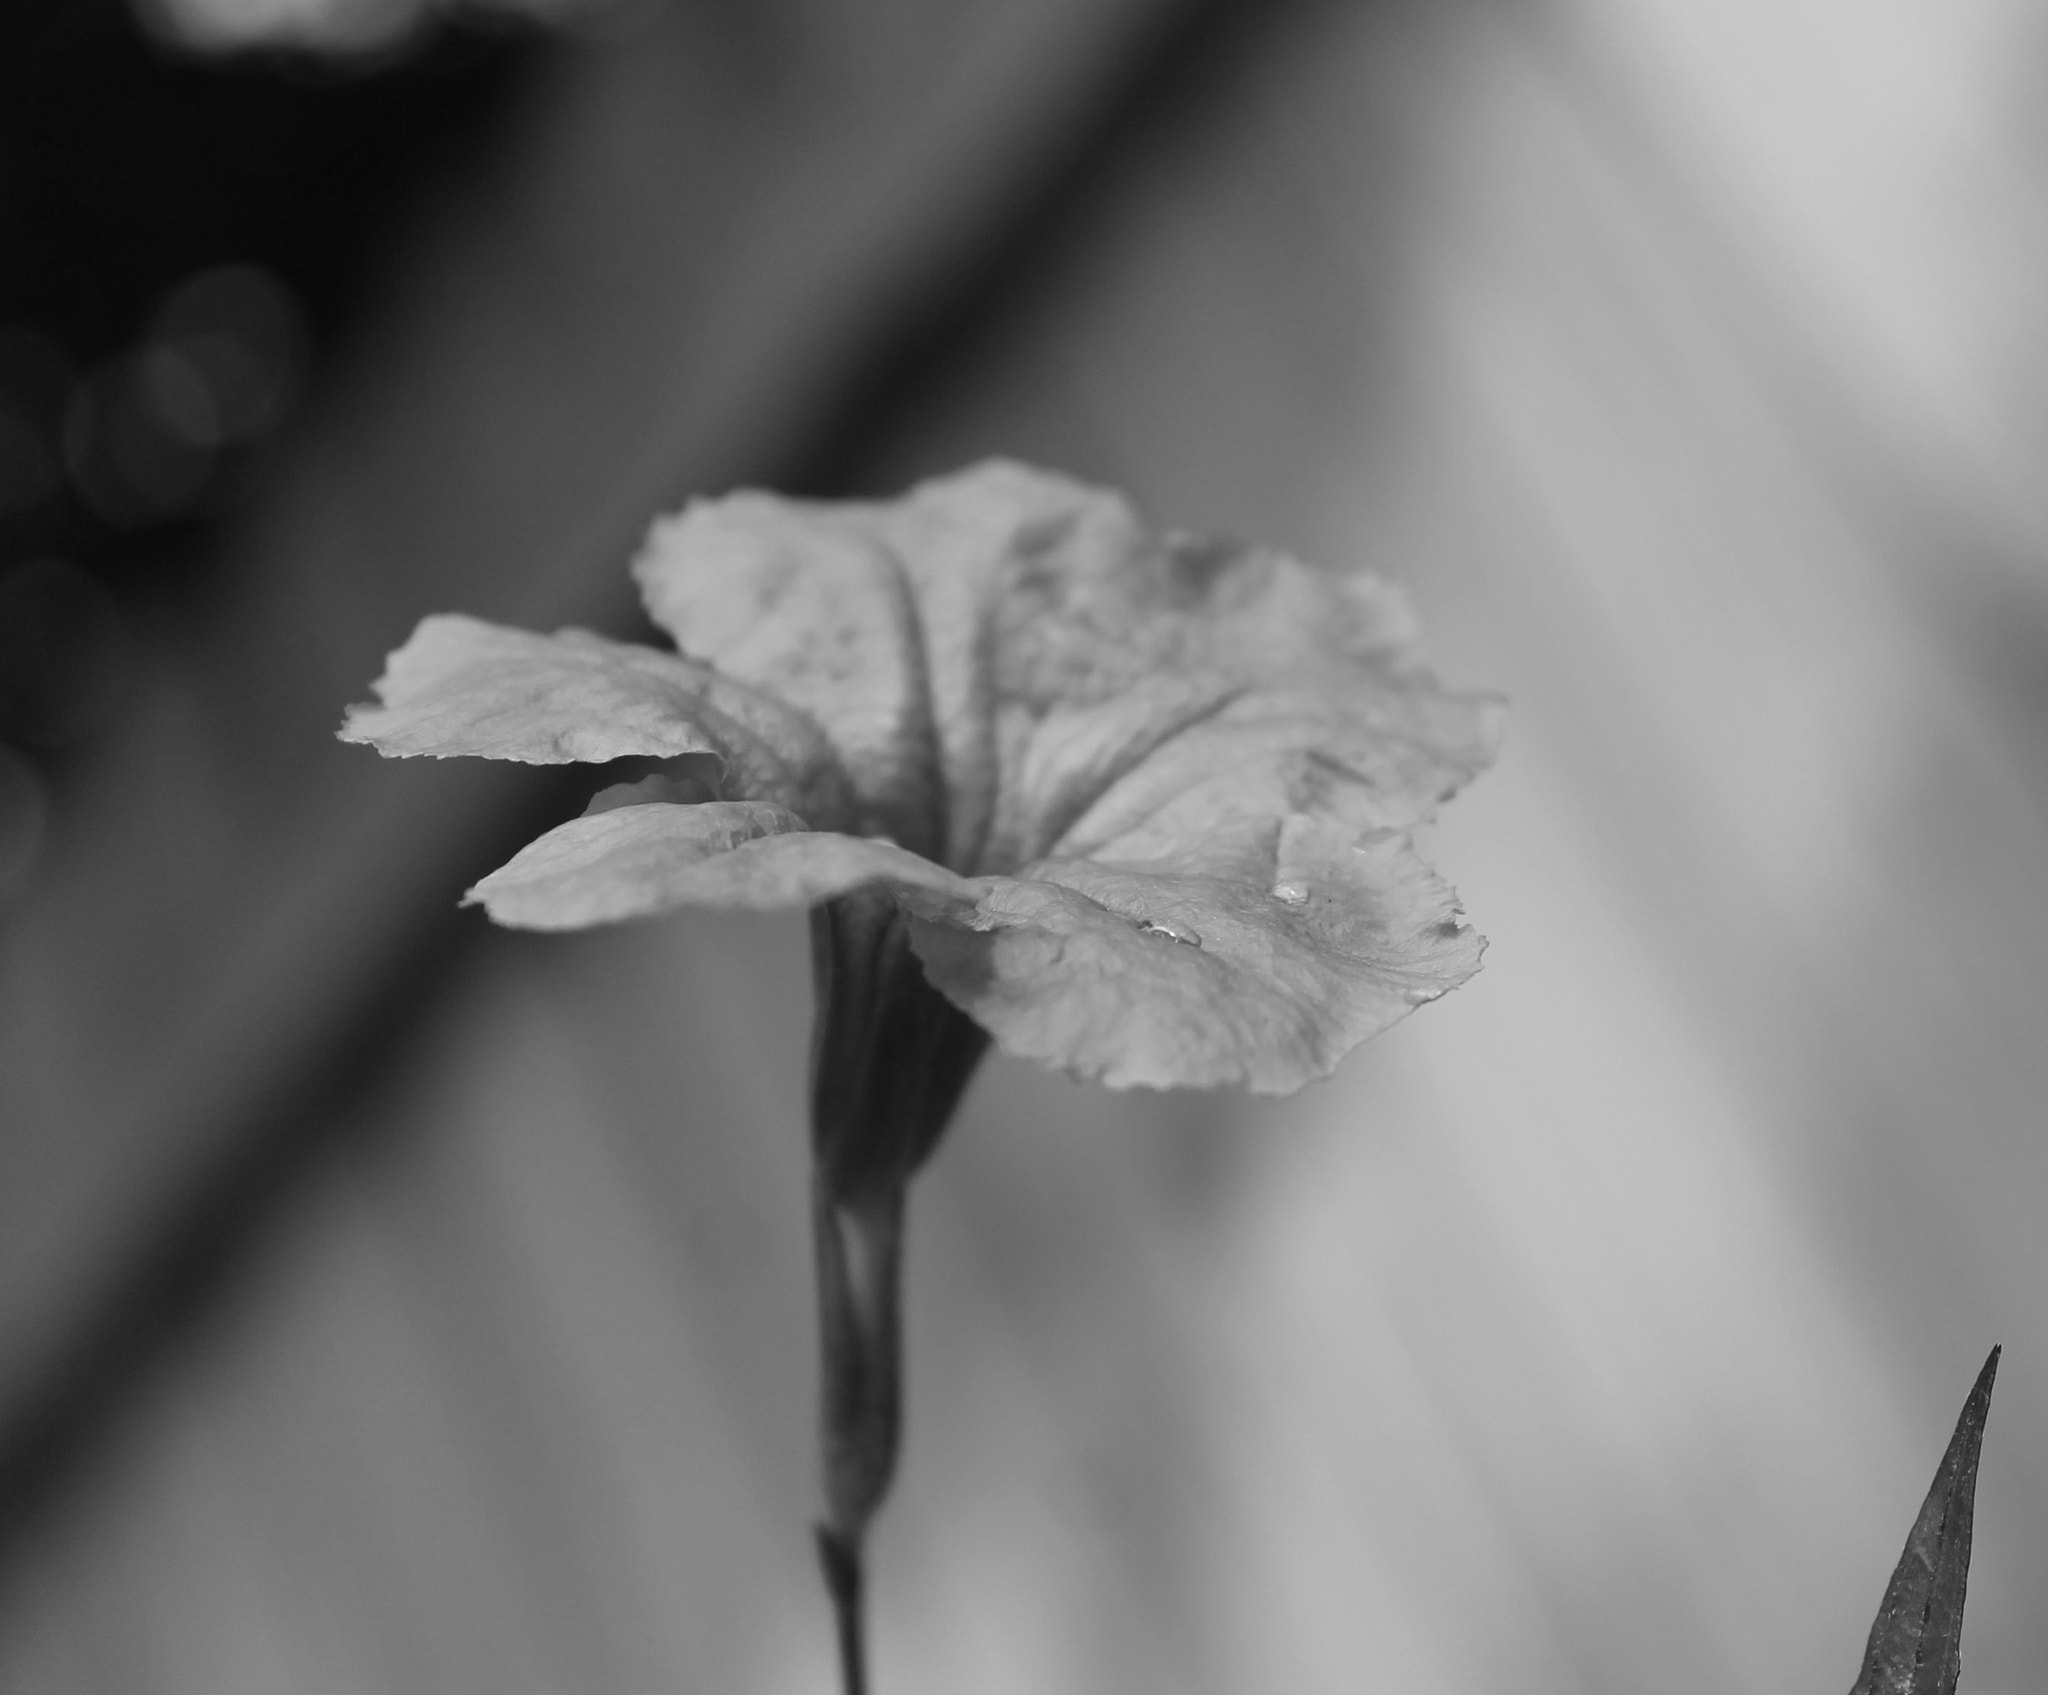 Photograph That one flower by Chloe Zentkovich on 500px